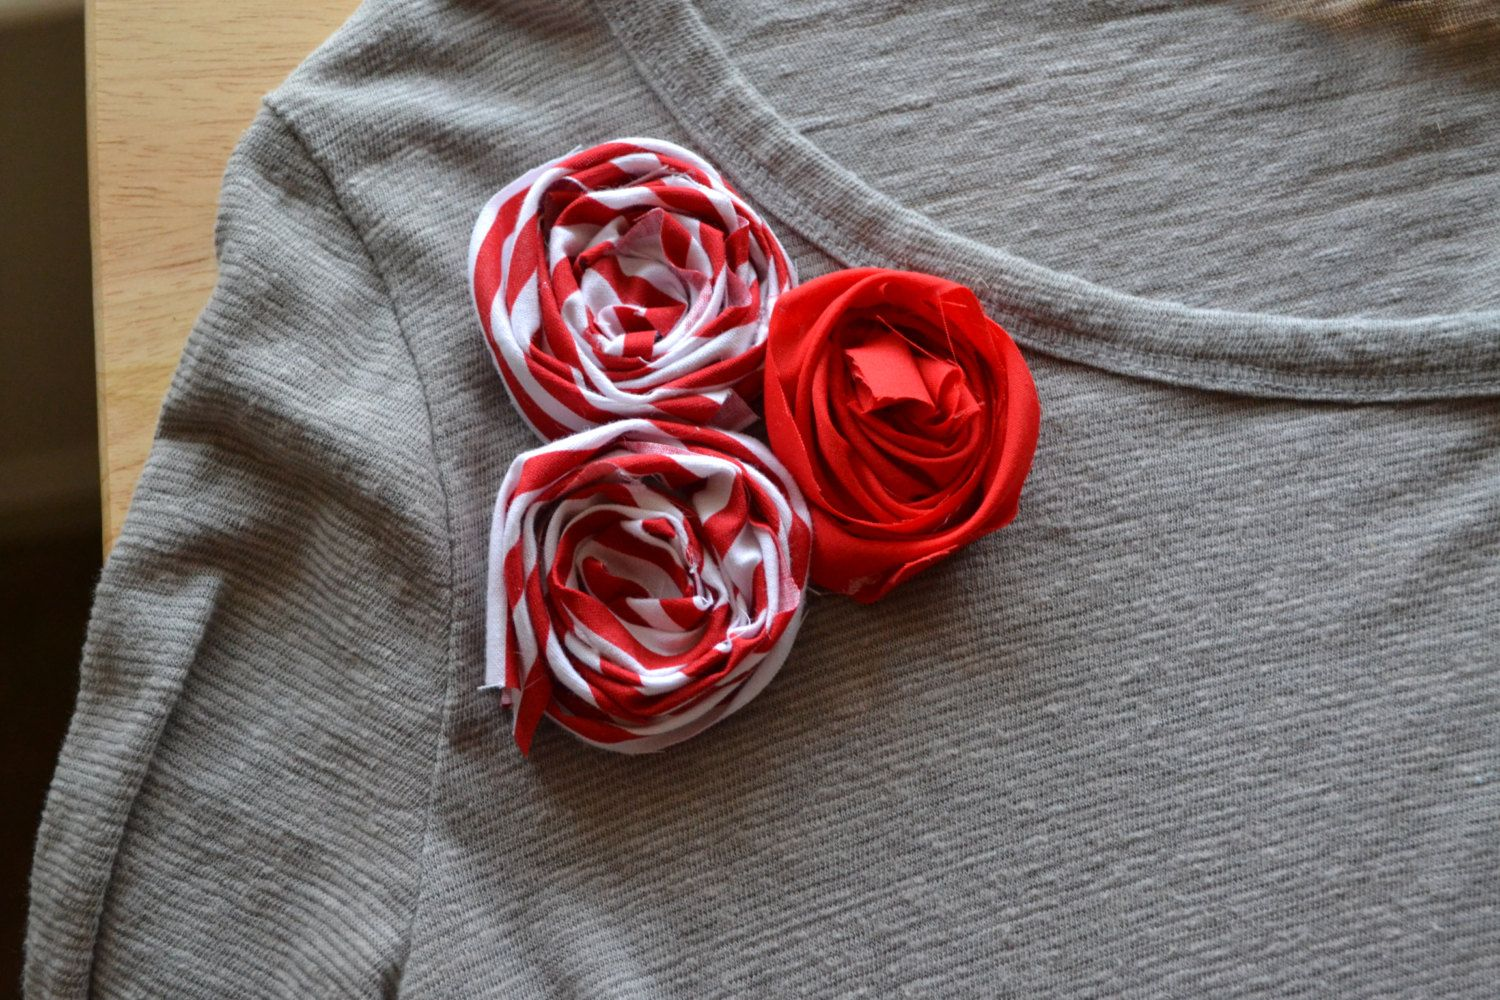 Add your own fabric flowers to an old tshirt ium game for that